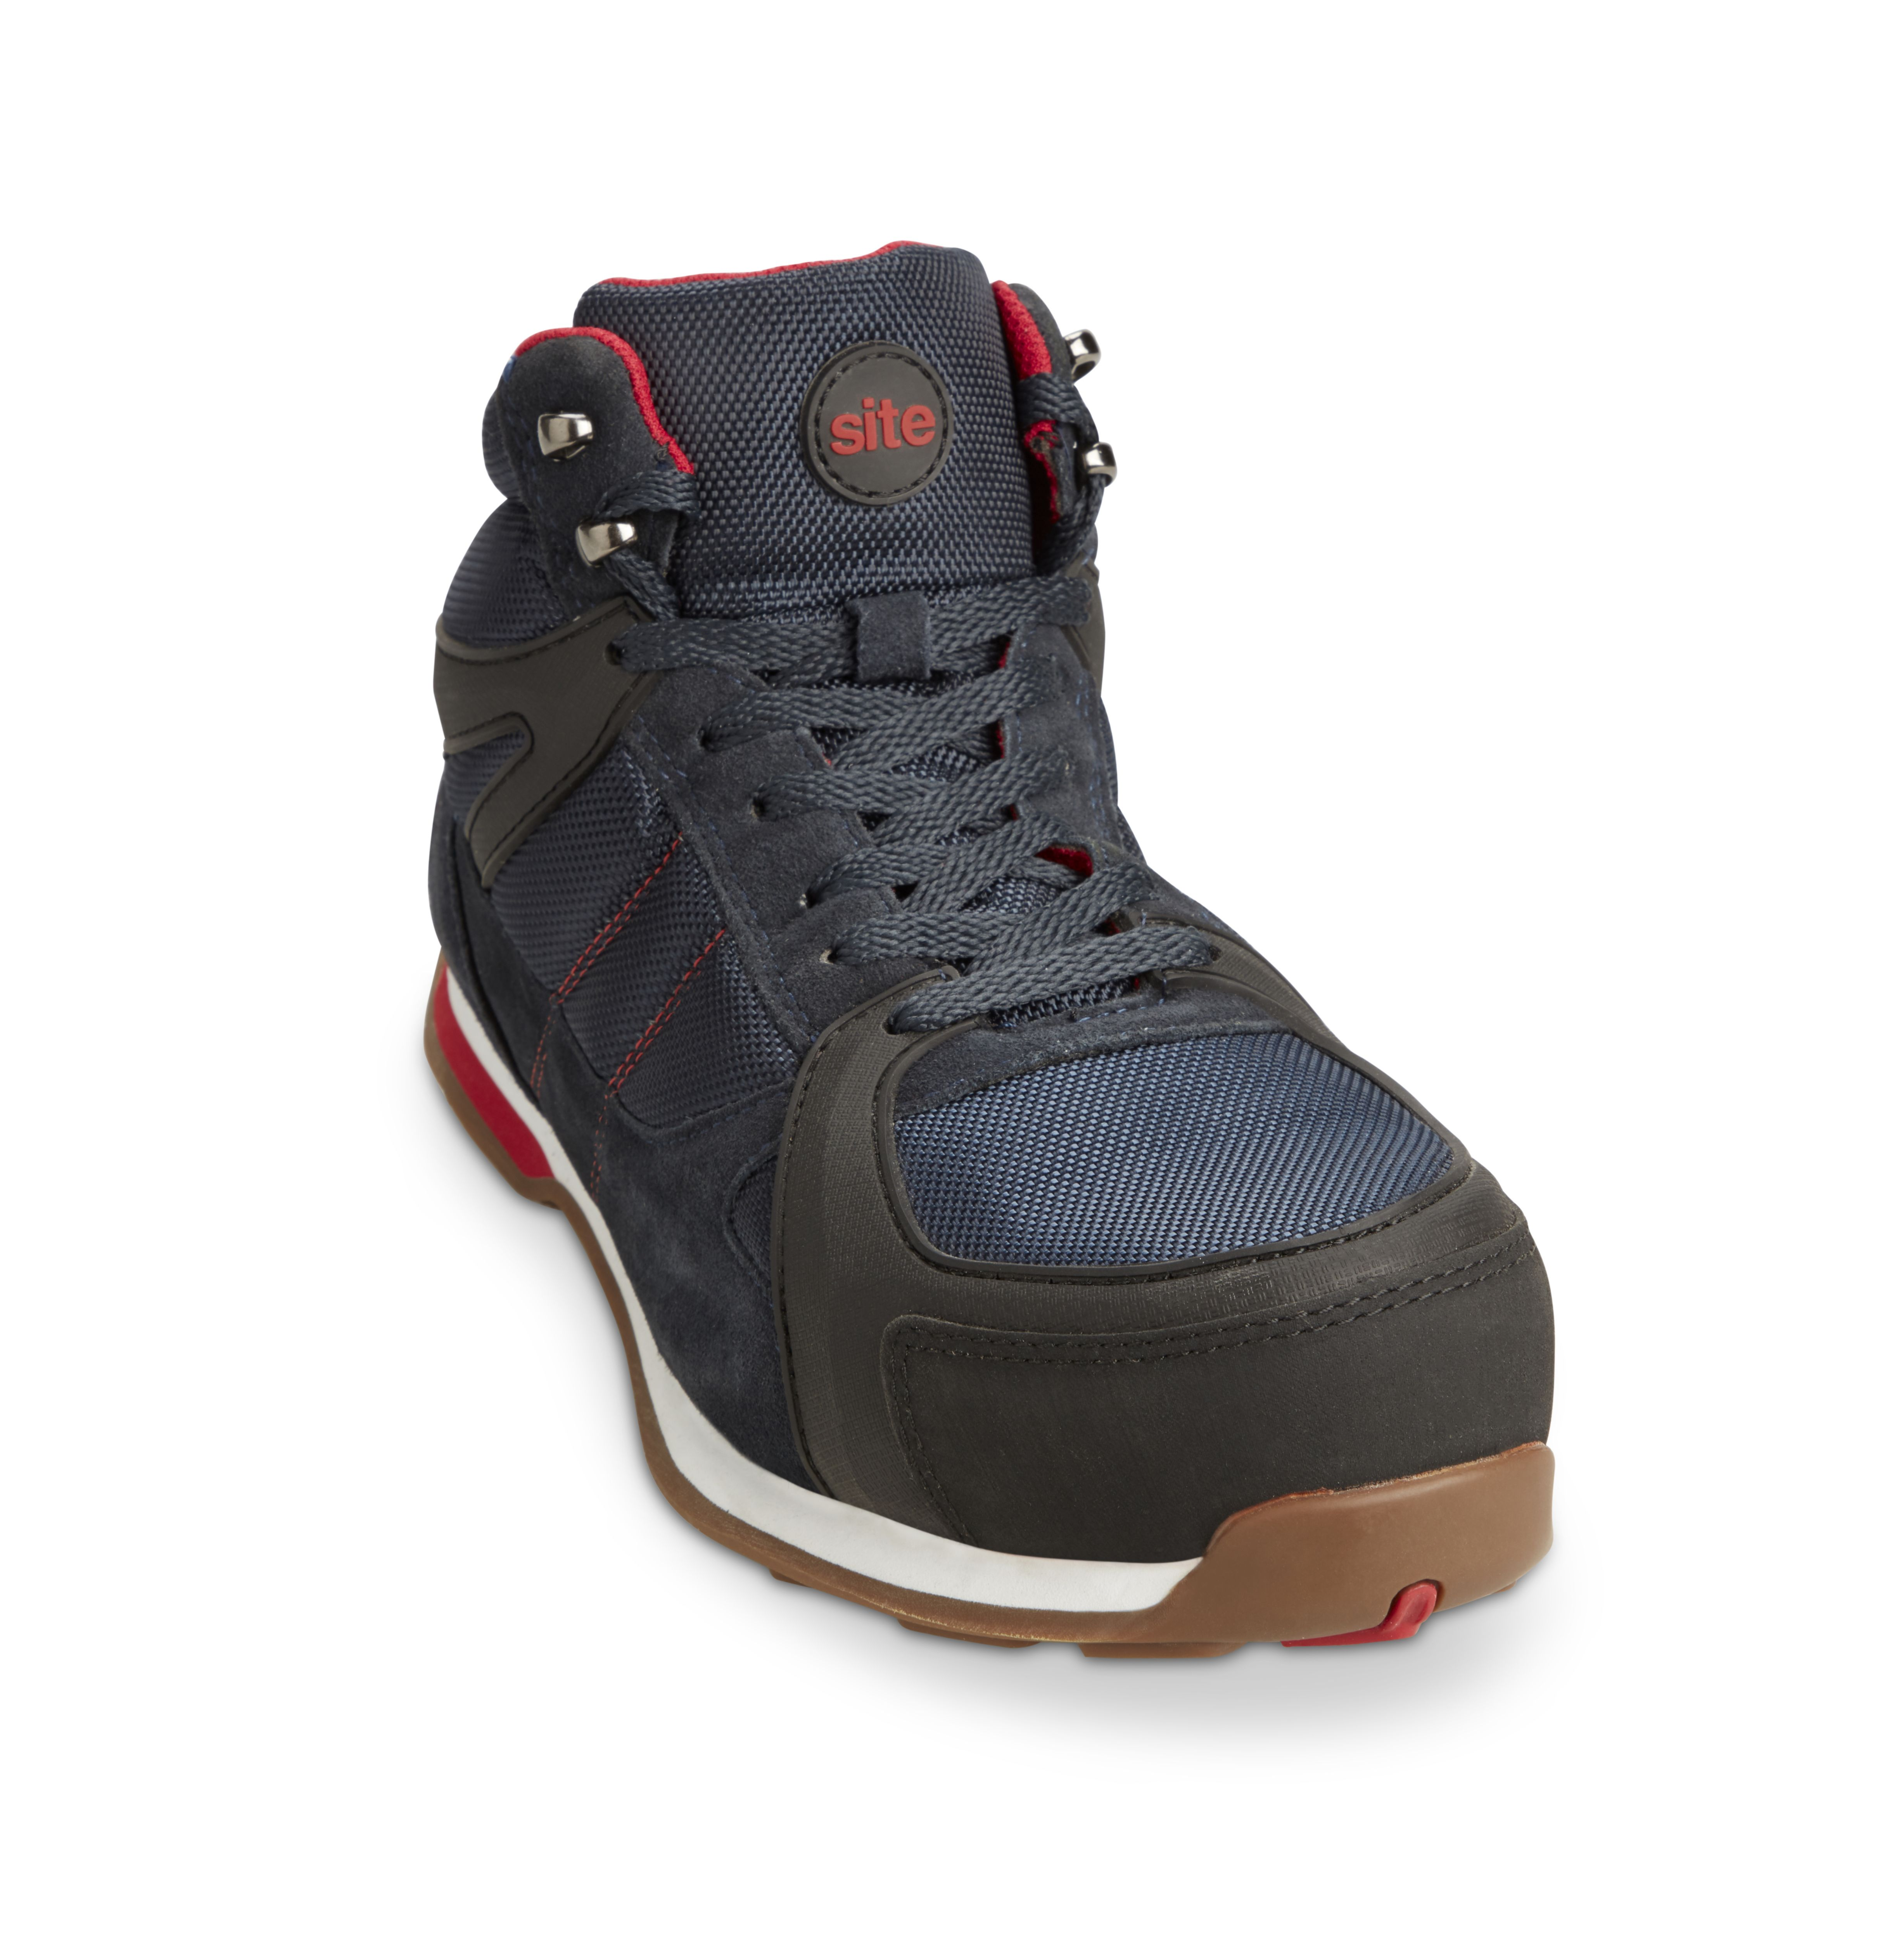 Tongue and Insole Site Strata Safety Trainers Navy Padded Collar